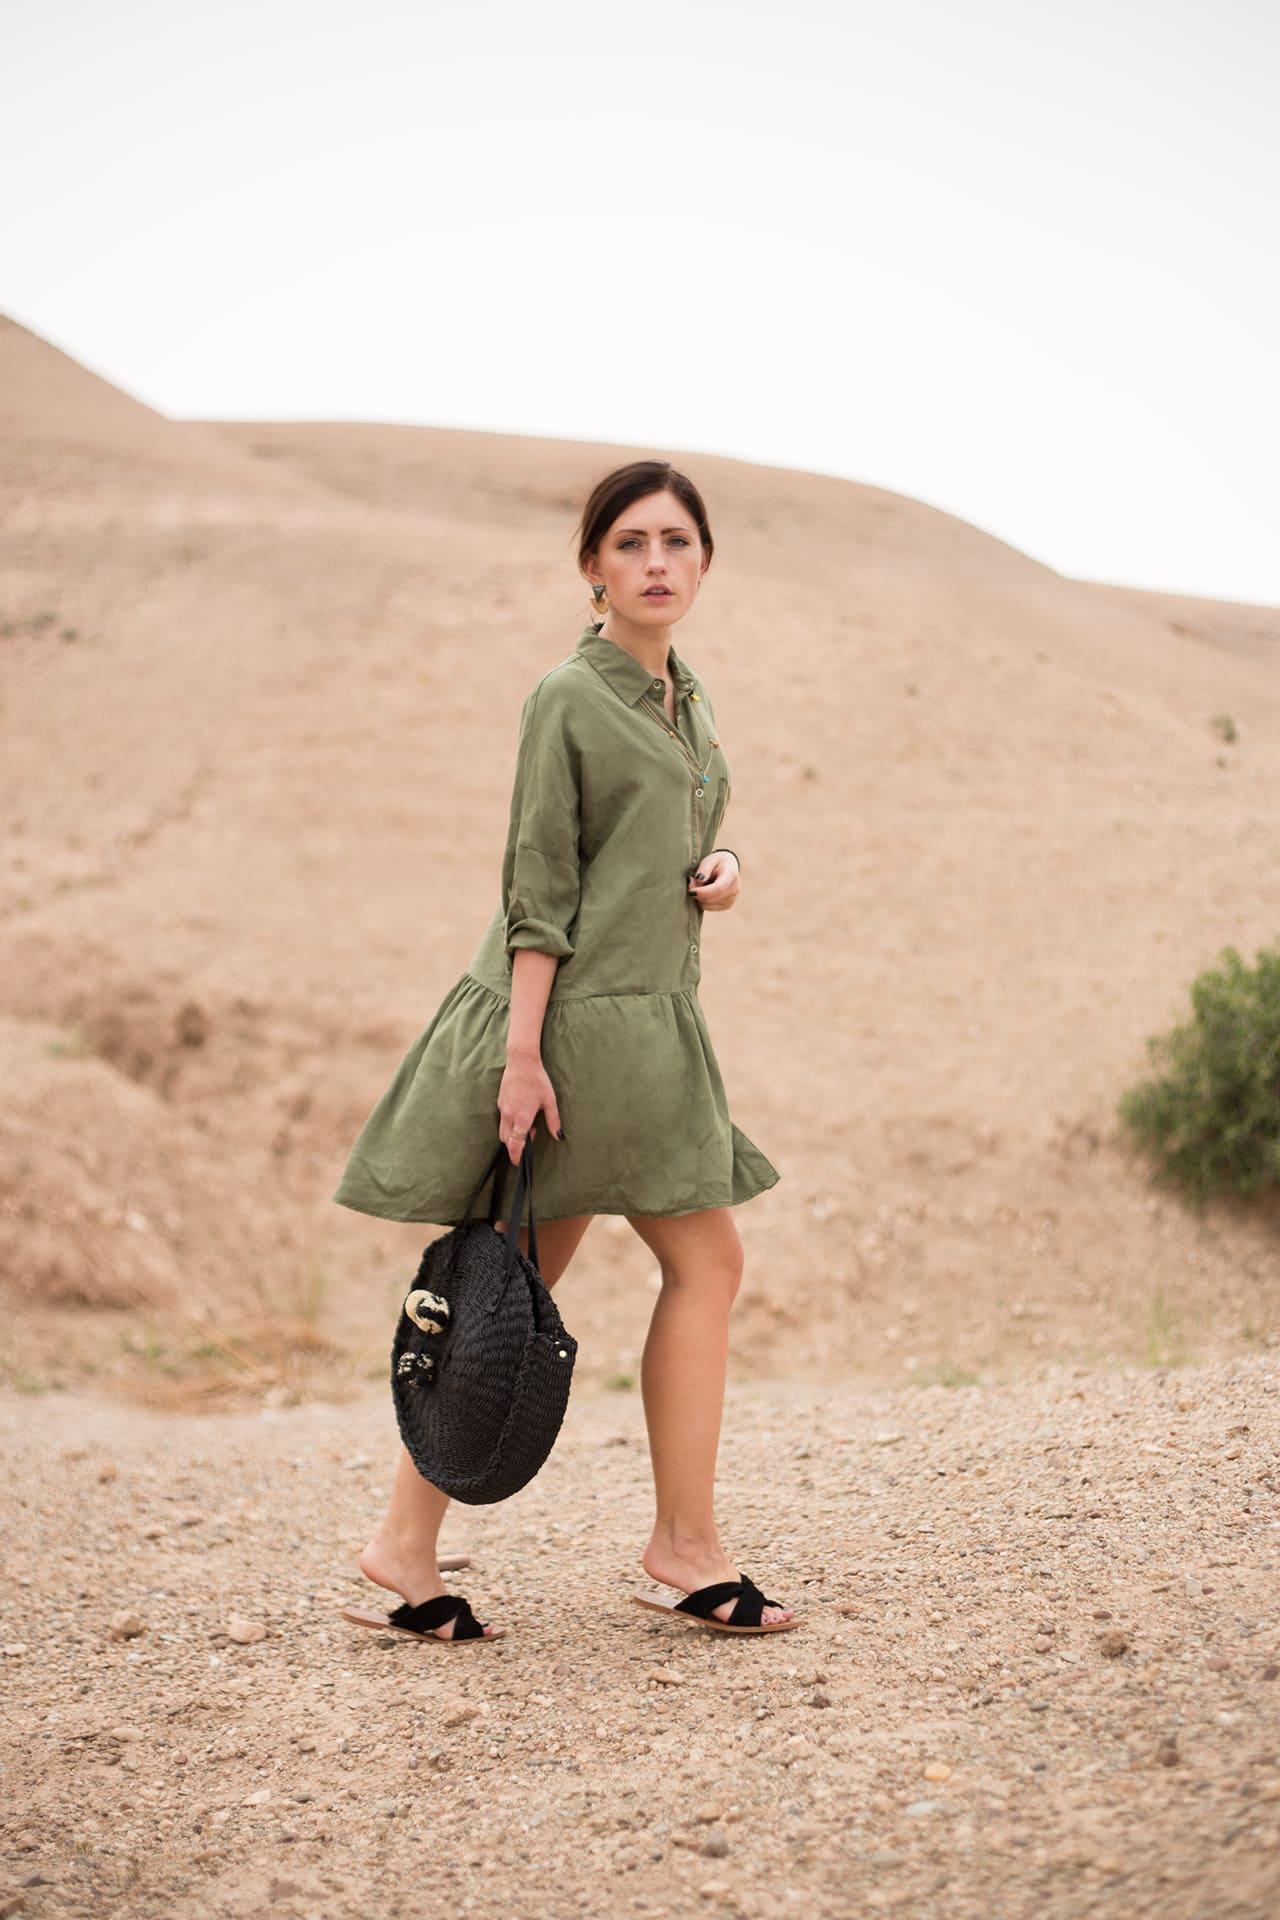 Stylisch im khaki Safari Kleid | deutscher Fashion und Travel Blog